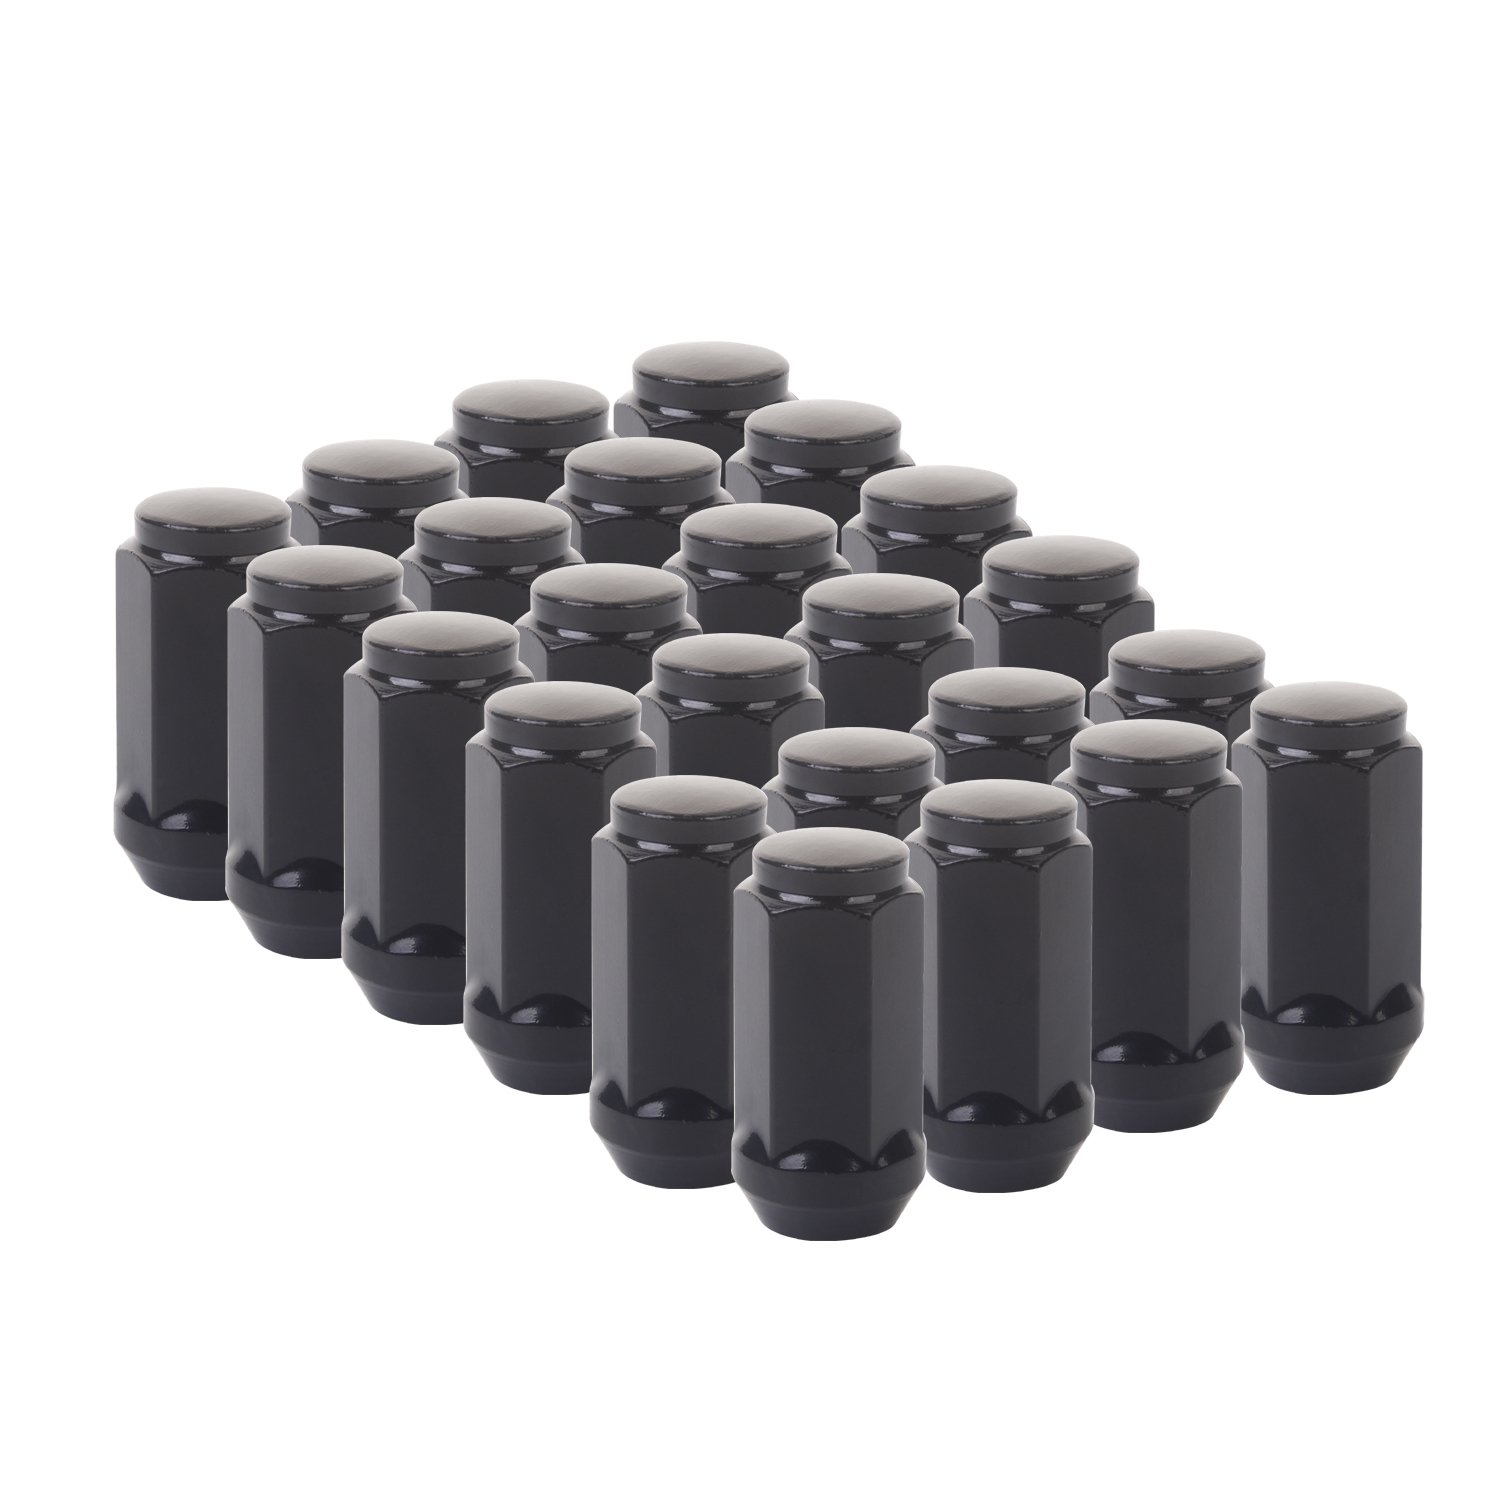 KV Black Bulge Lug Nuts Extended 45mm(1.77'') Tall 14mmx1.5Conical Cone Acorn Closed End set of 24pcs Installs with 19mm or 3/4'' Hex Socket for 6 Lug Wheels